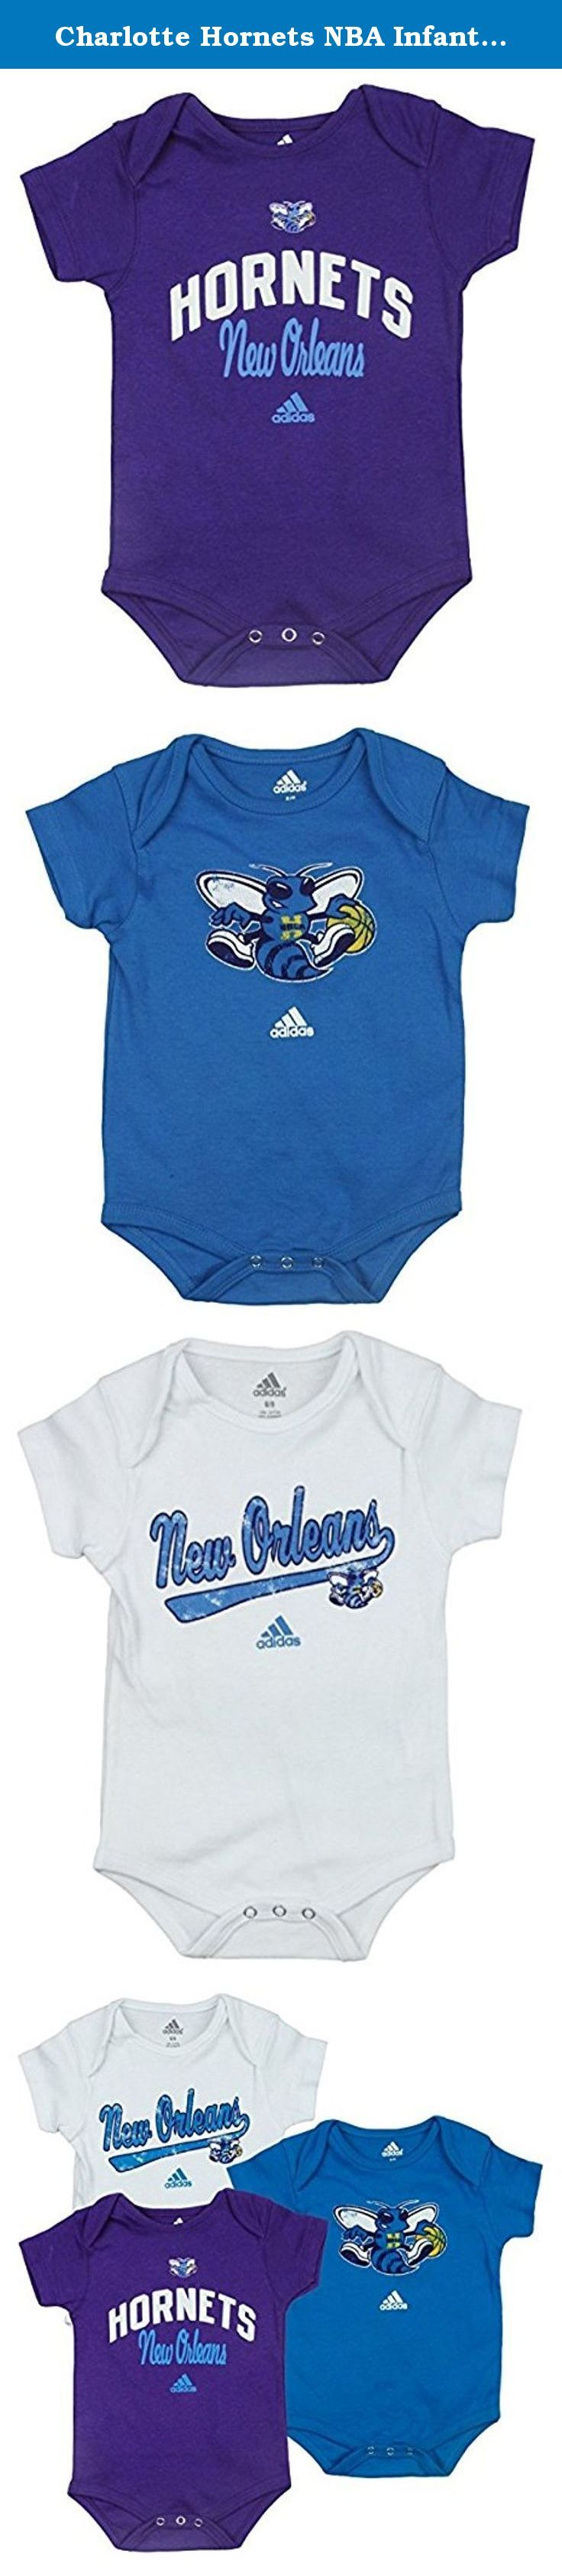 Charlotte Hornets NBA Infants Hooded Wind Coveralls, Teal (3-6 Months, Teal). Share your love for the Hornets by getting your young one these Charlotte Hornets hooded wind coveralls. The coveralls feature an embroidered Charlotte Hornets logo on the front and a screen printed logo on the back. With this piece of Hornets team gear your little sports fan will become the ultimate enthusiast. 100% nylon shell; 65% polyester, 35% cotton lining. For infants, 3-9 months old.